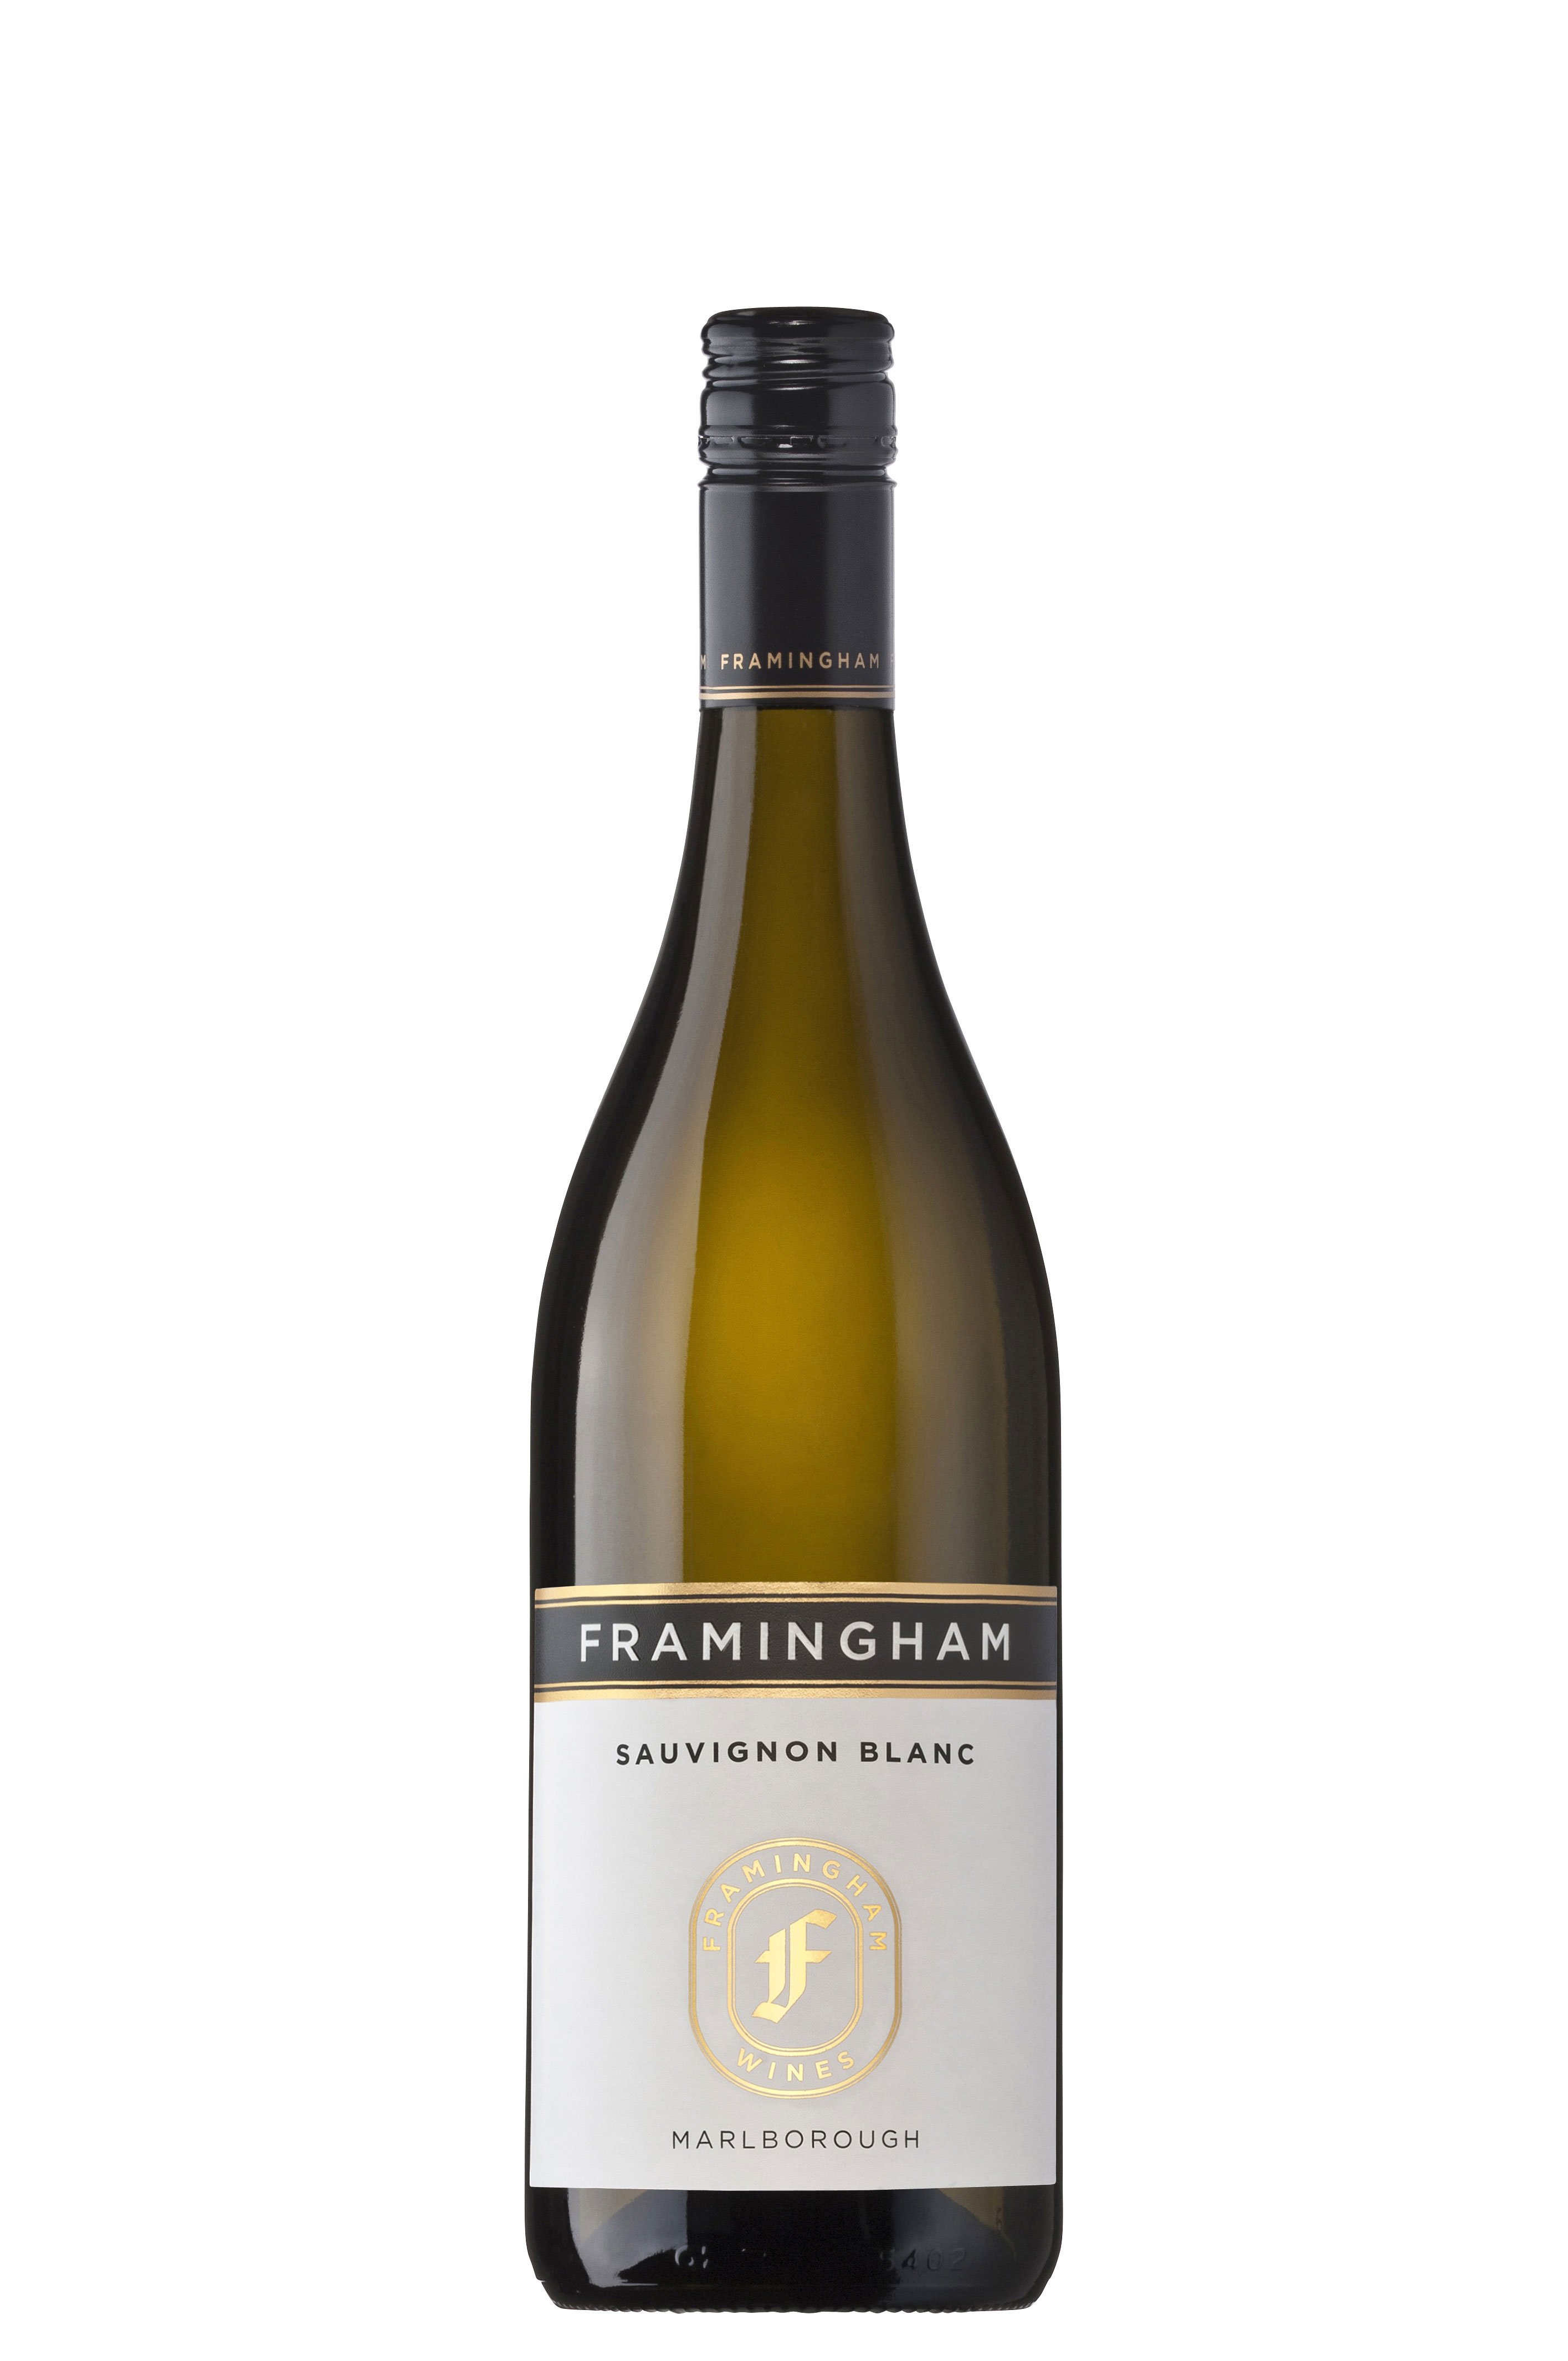 Sauvignon Blanc Marlborough Framingham 2015